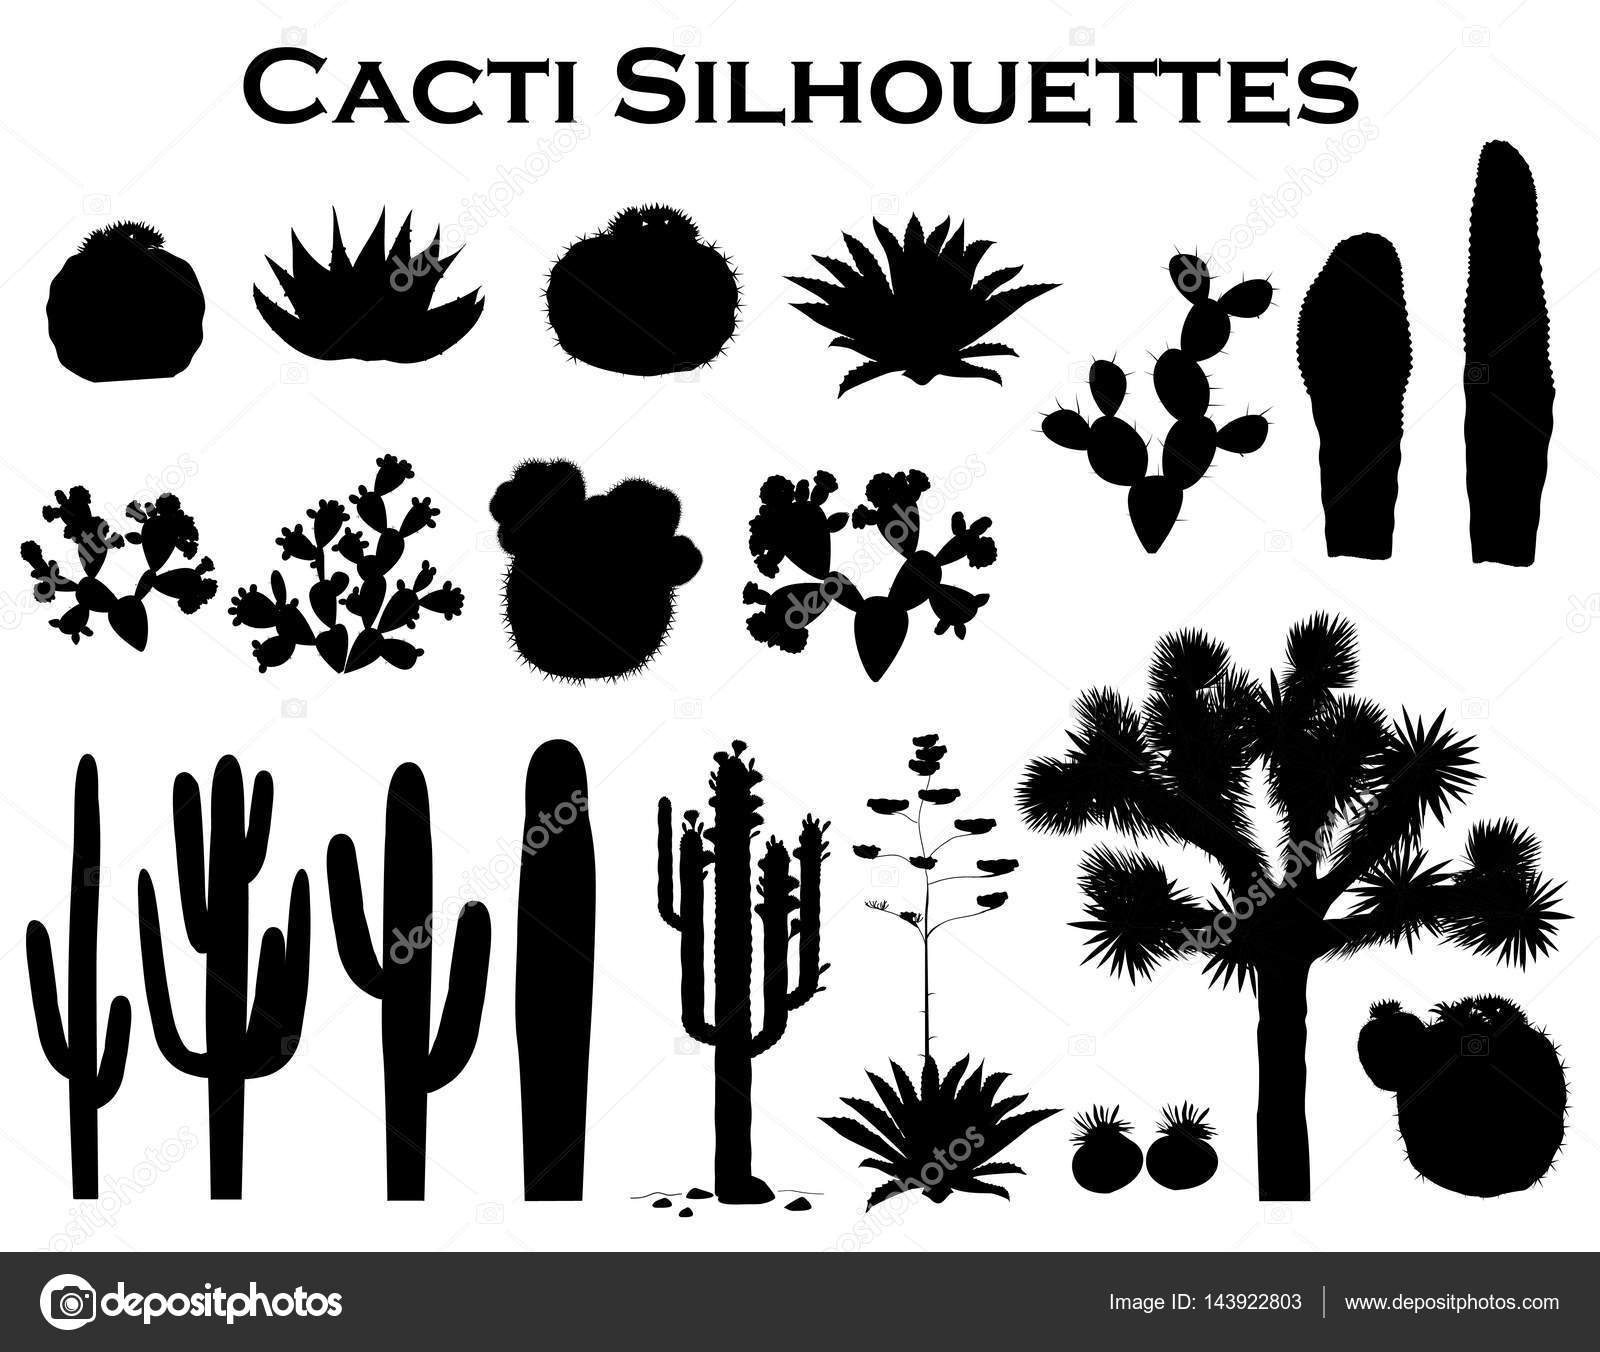 Black Silhouettes Of Cactuses Agave Joshua Tree And